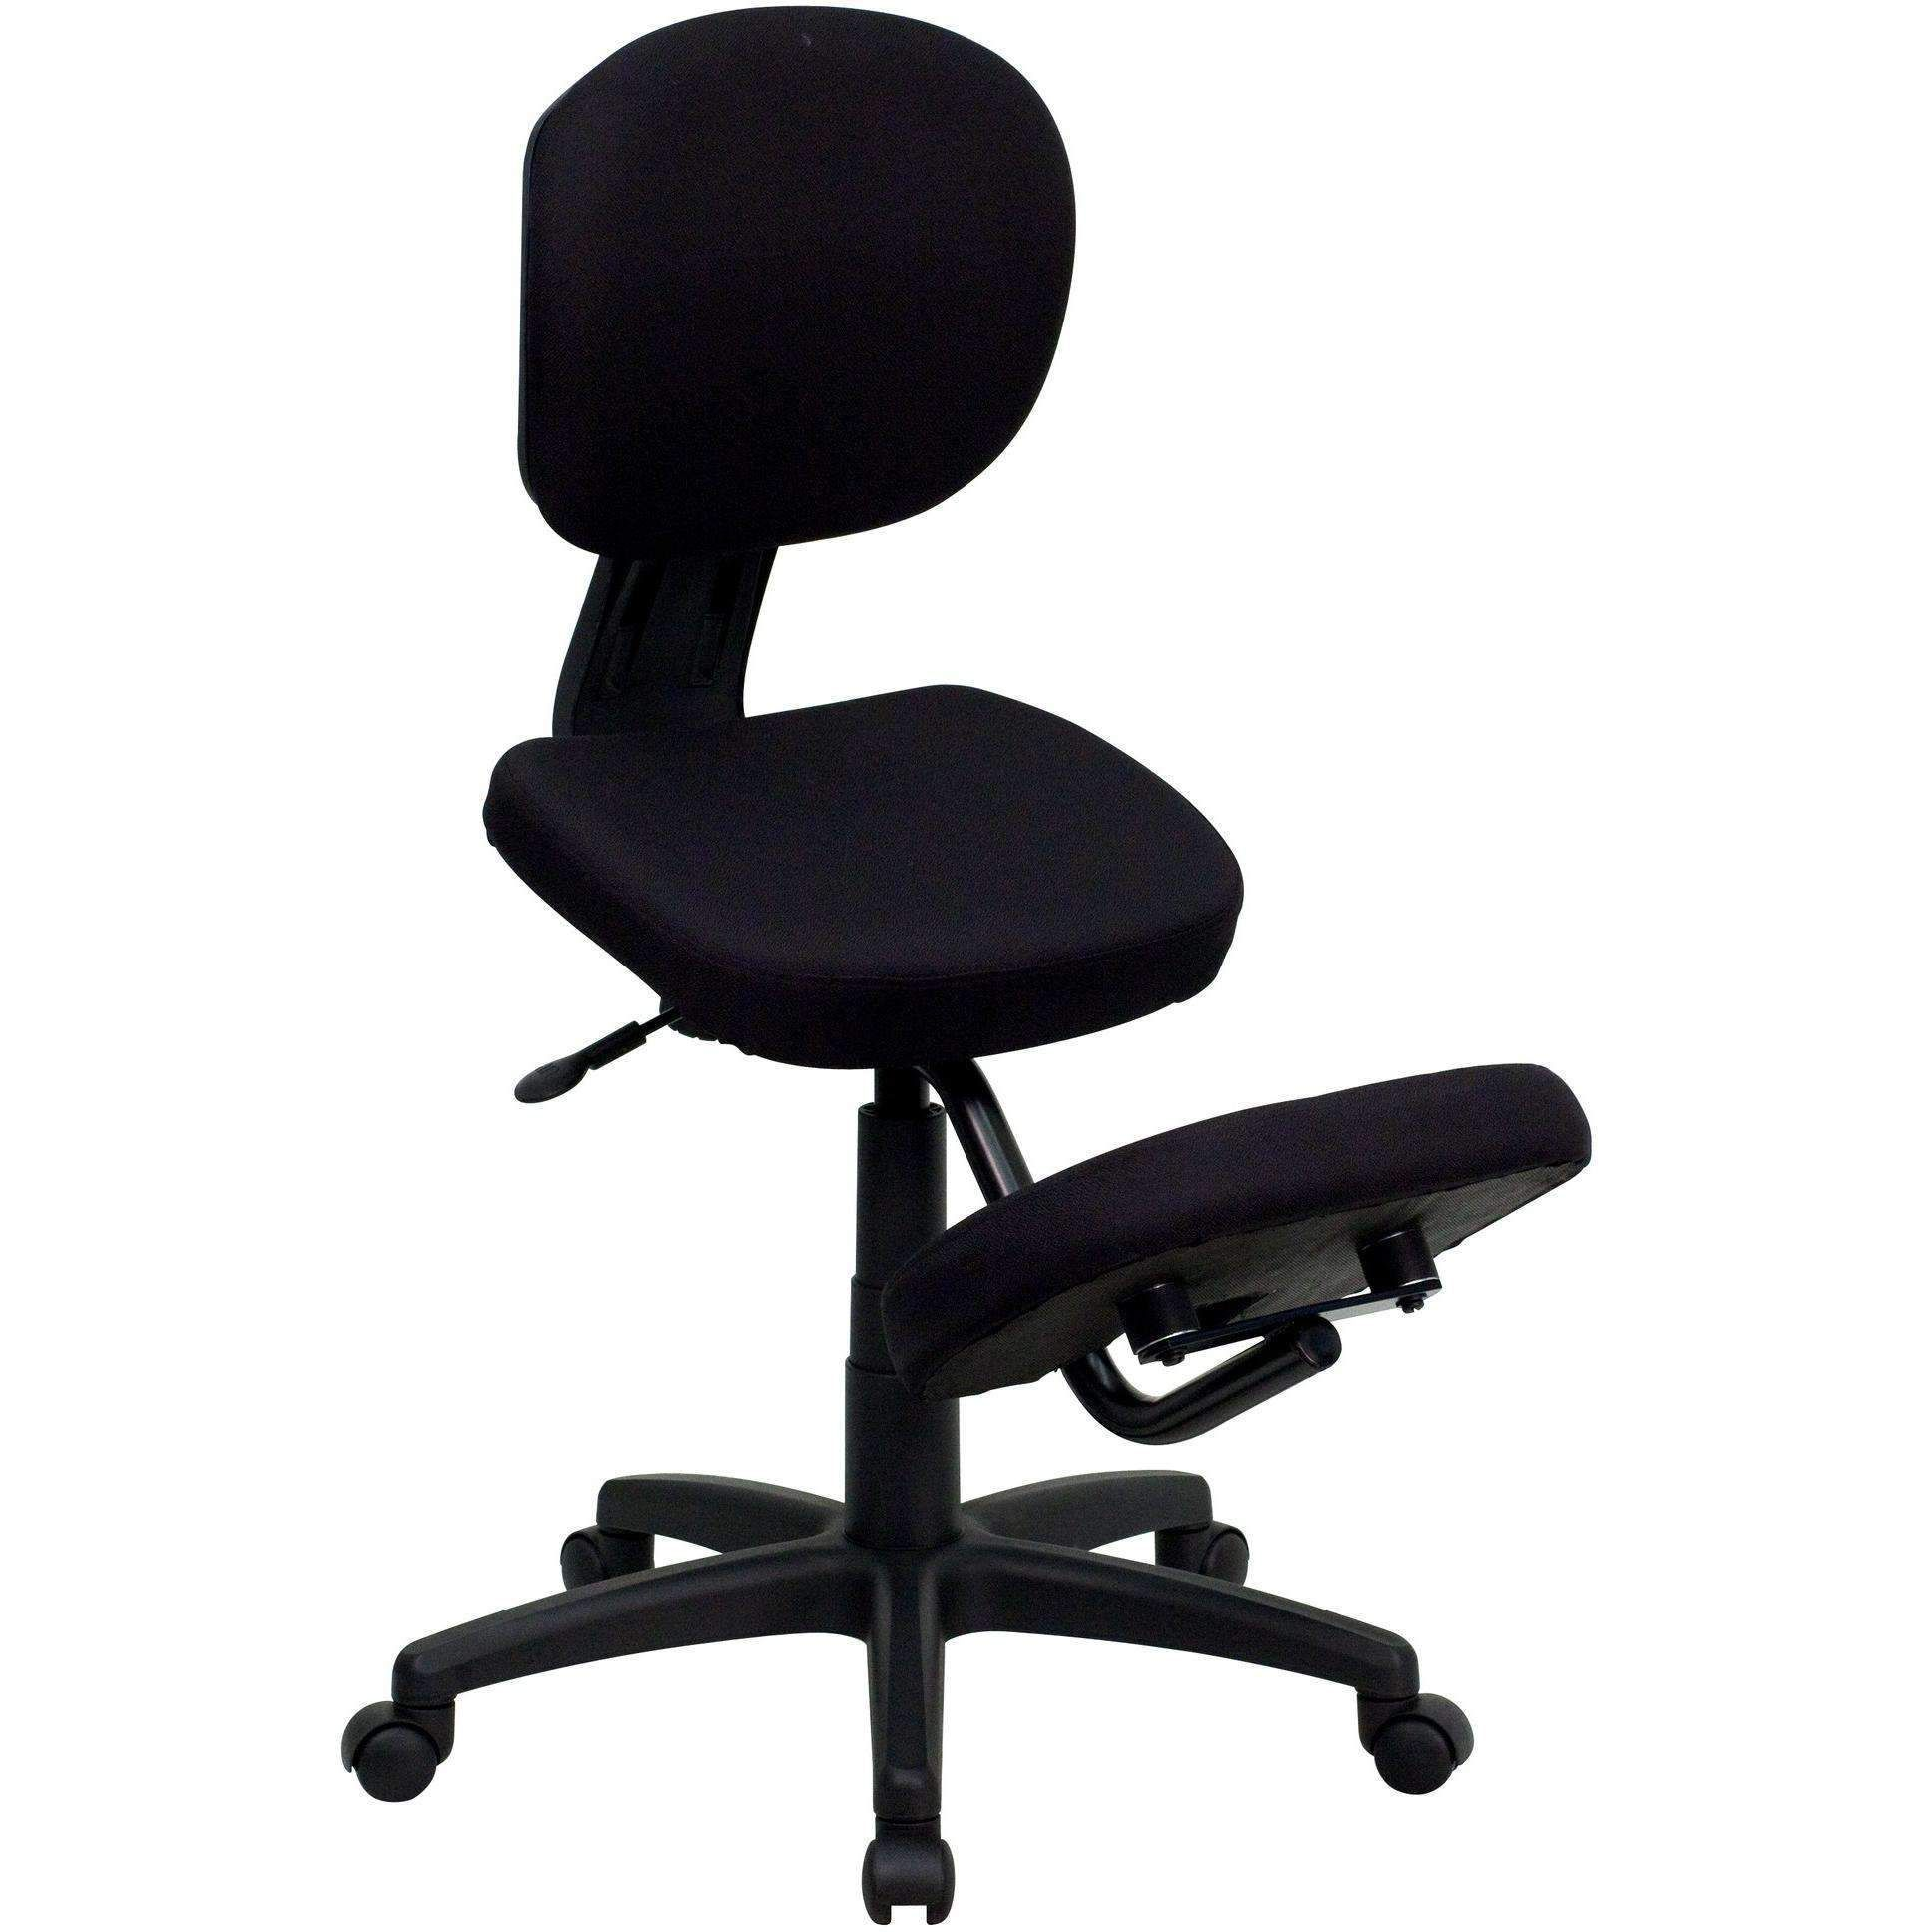 Mobile Ergonomic Kneeling Posture Task Chair with Back in 2019